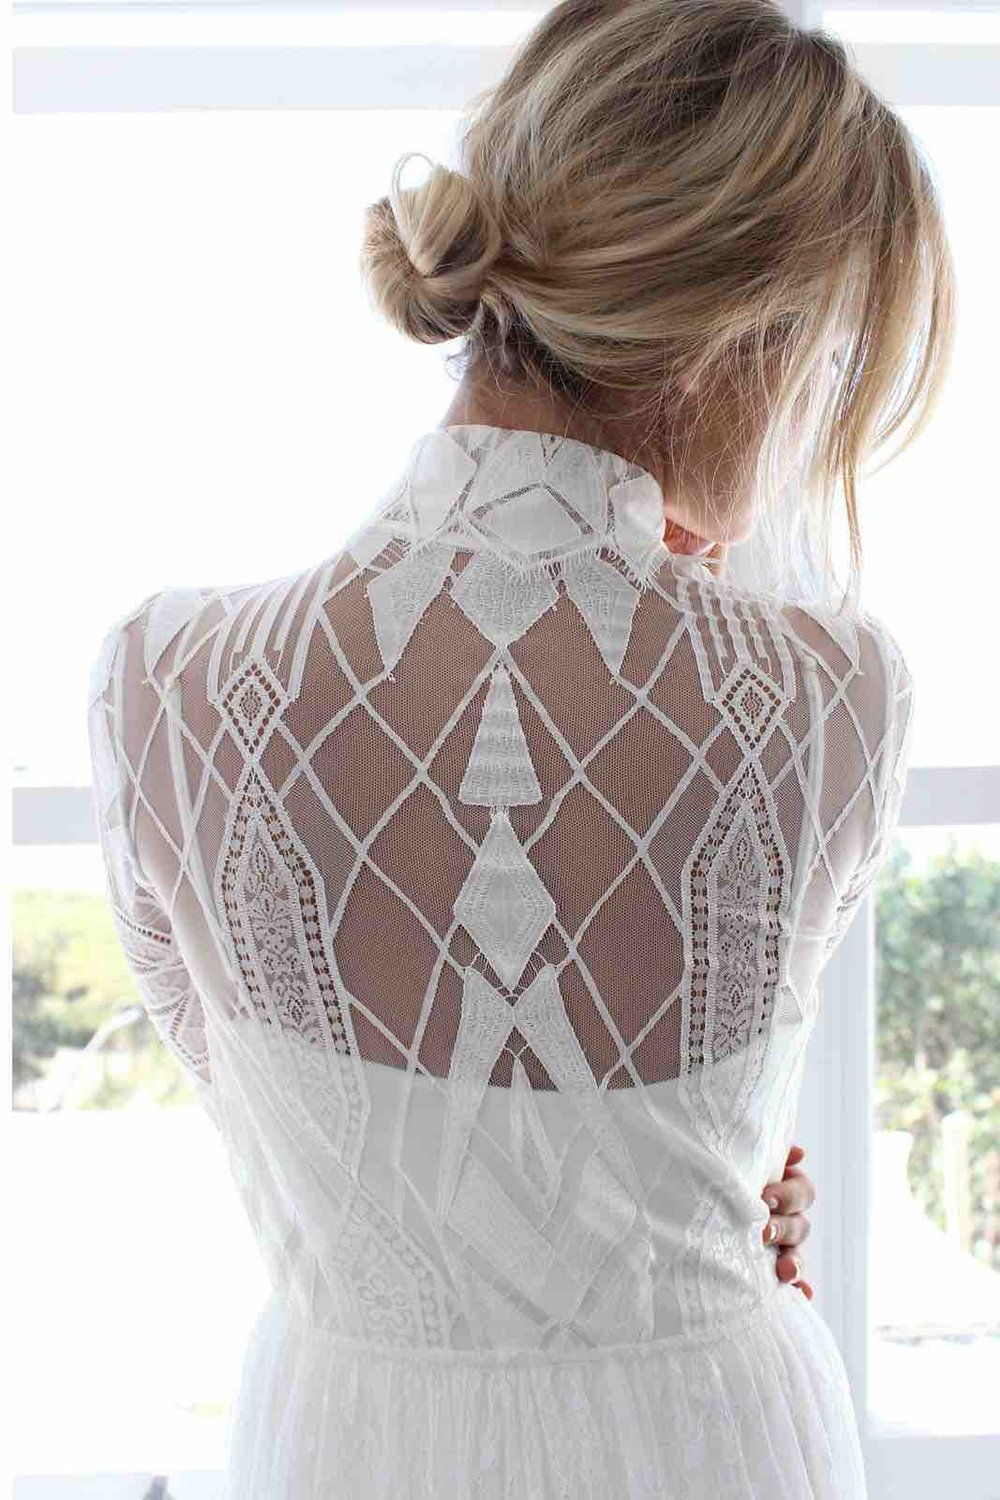 Jac+Robe+Back+-+Blanc+Collection+from+Grace+Loves+Lace.jpg